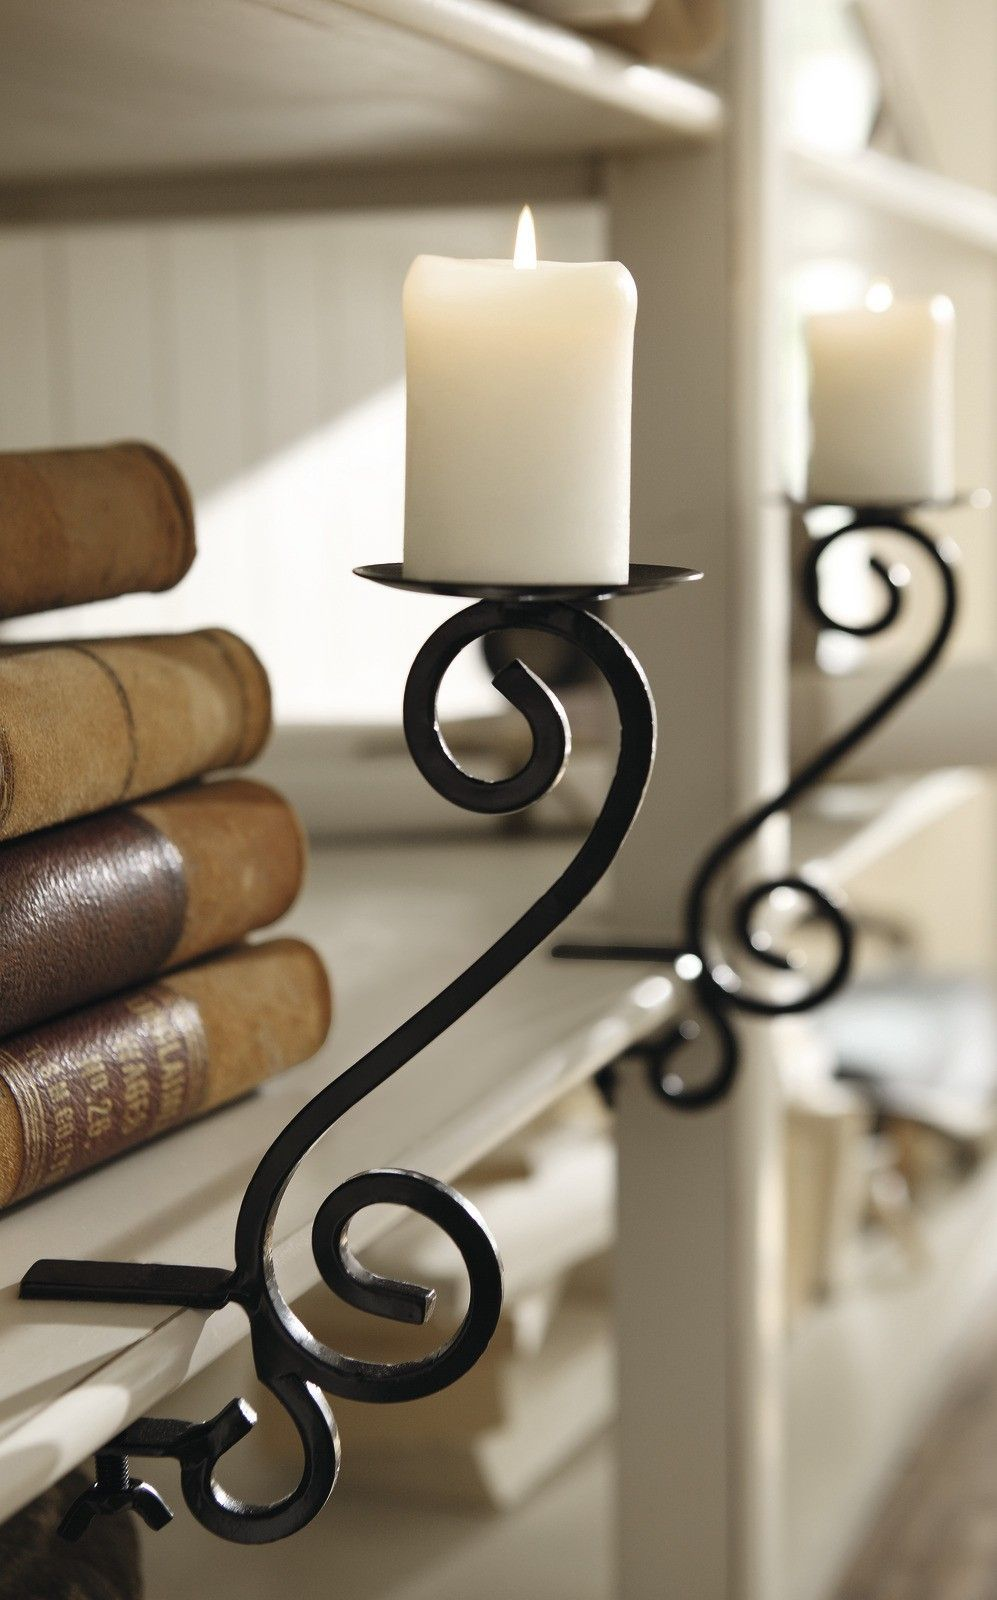 Candle Holders That Attach To Shelves - Great Idea! | Fer